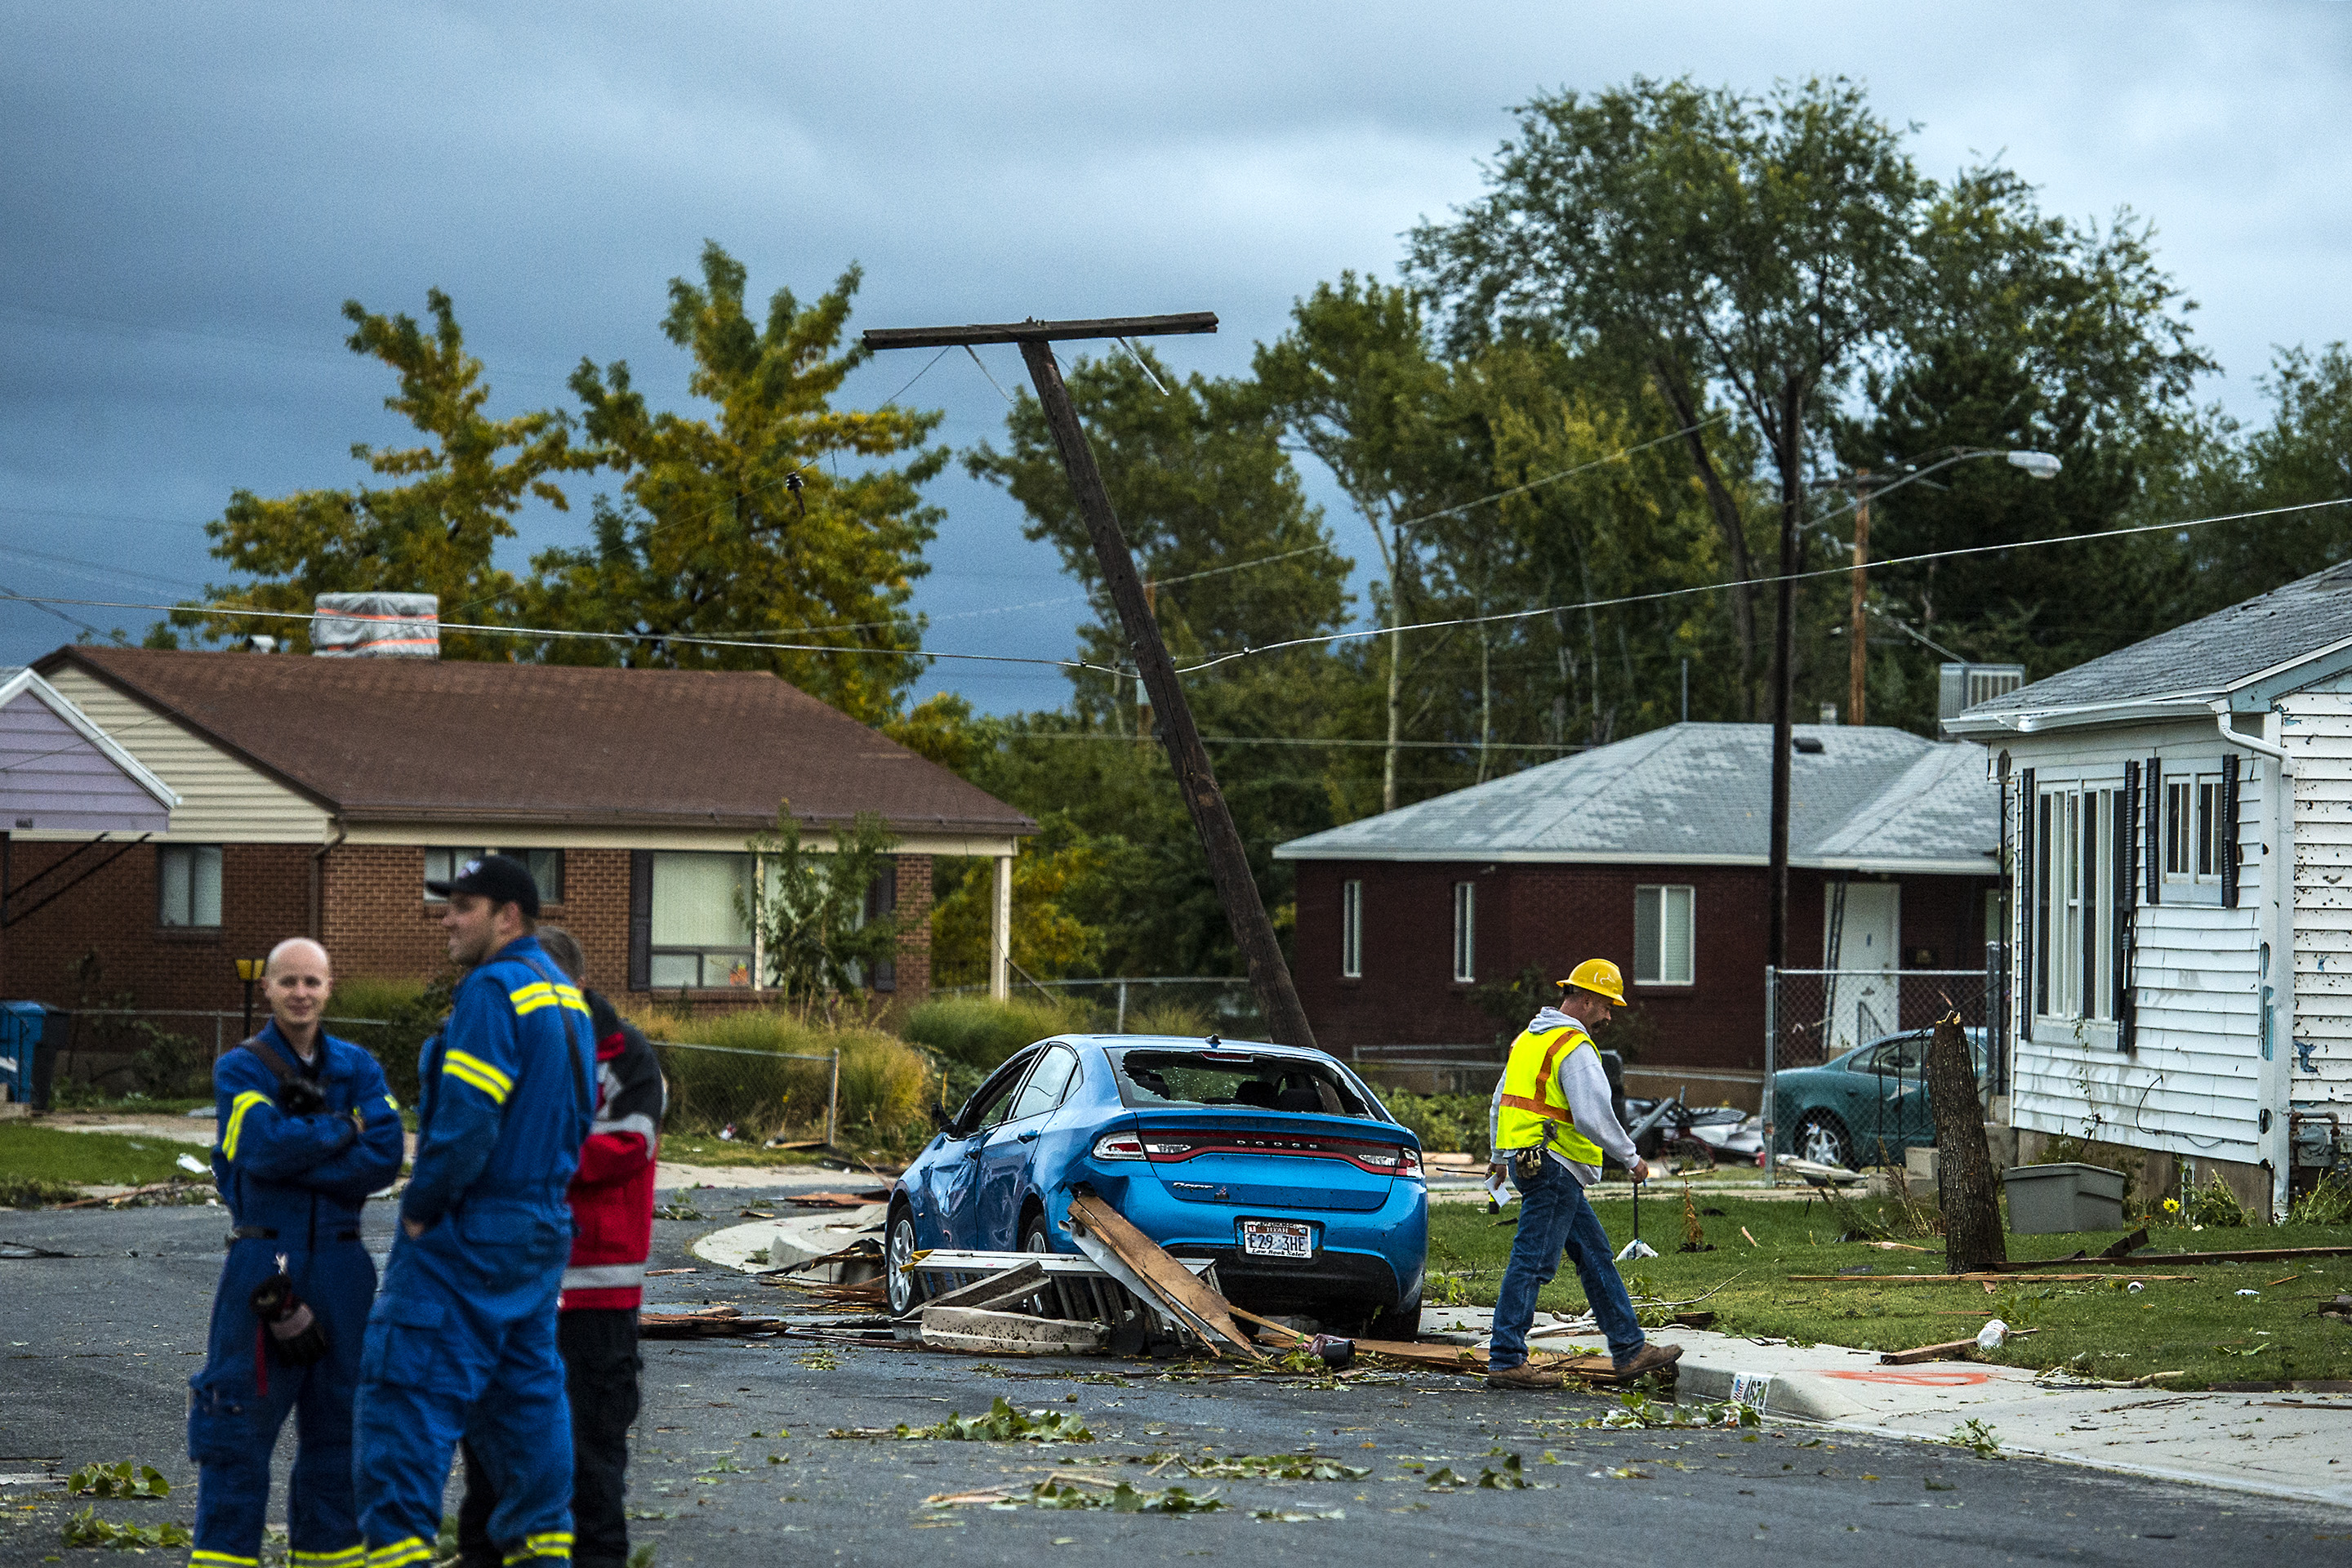 Damage caused from a tornado in Washington Terrace City, Utah, Thursday, Sept. 22, 2016. Other storms in the area that produced winds in excess of 70 mph caused damage to trees and other property near the city of Layton. That's about 15 miles south of Washington Terrace. (Chris Detrick/The Salt Lake Tribune via AP)